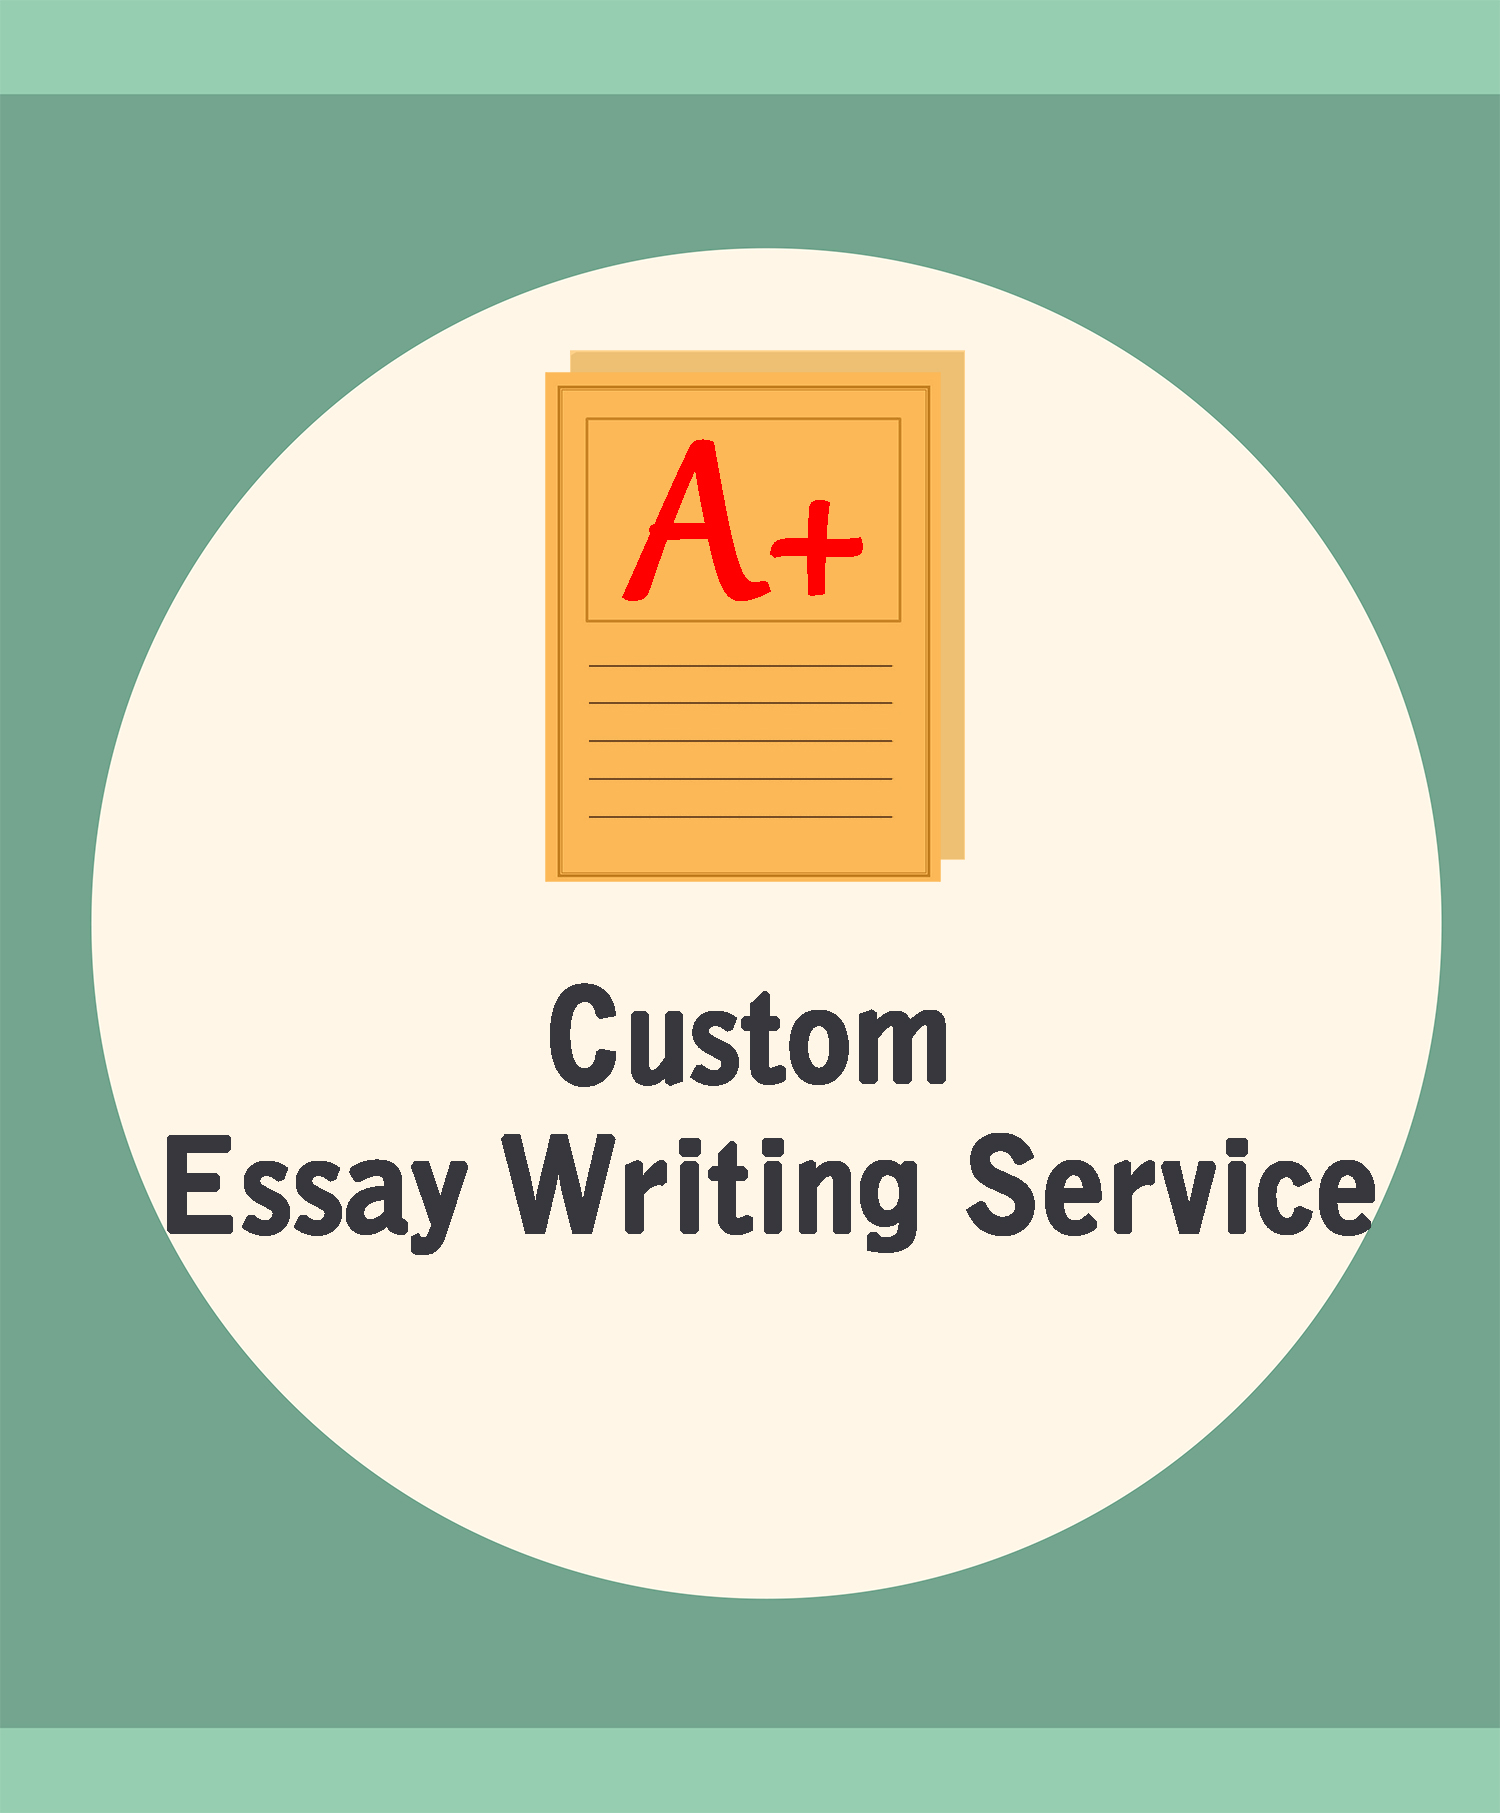 essay writing service usa custom paper writing services essay  custom paper writing services custom paper writing services tk